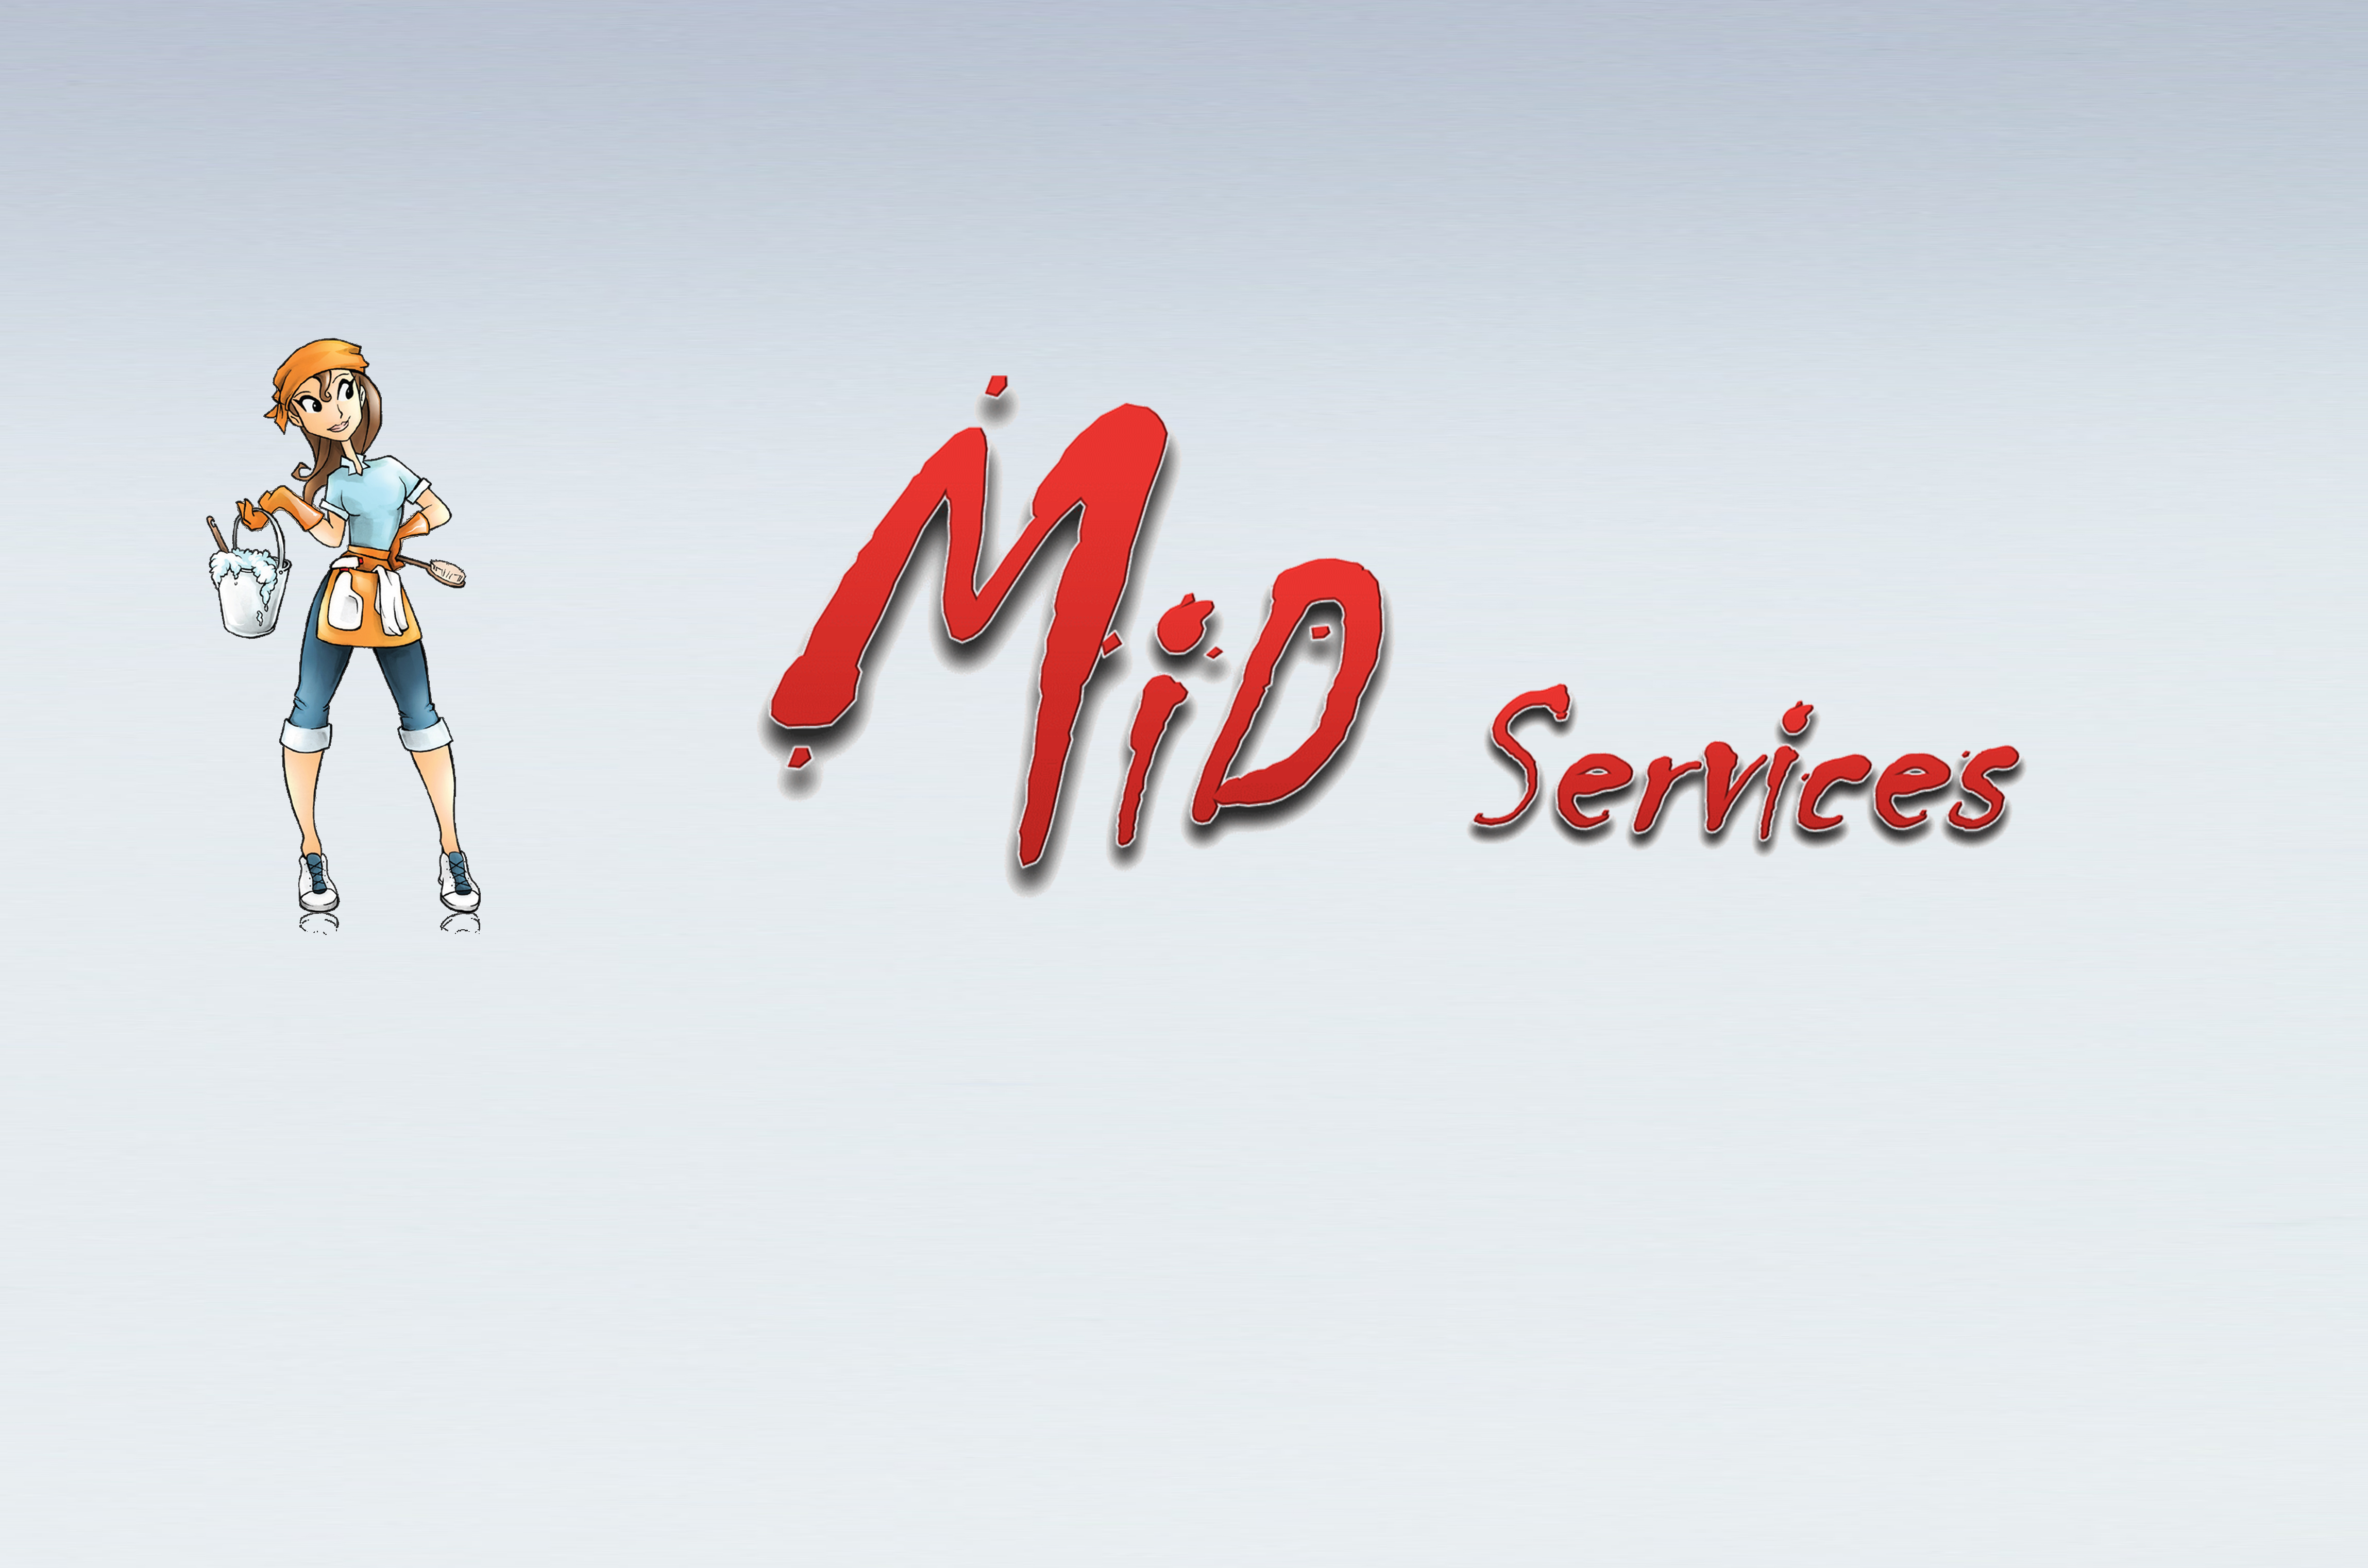 MID services